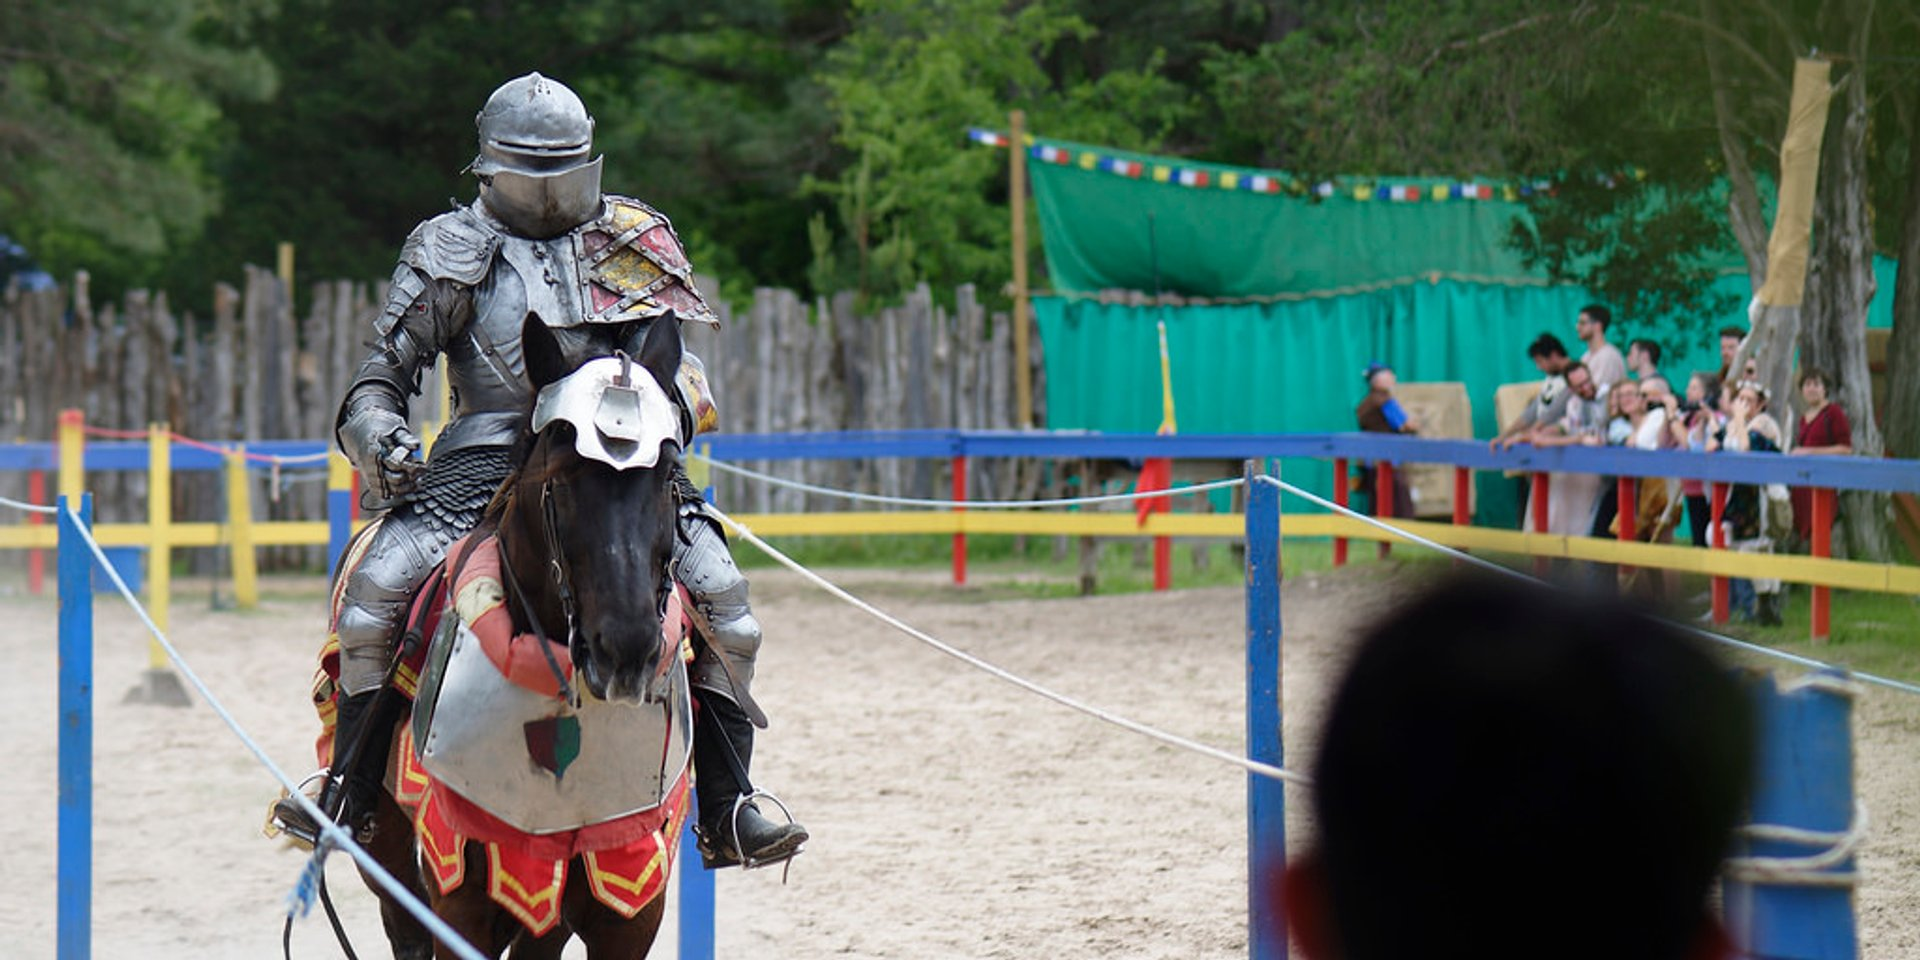 Hedge Knight or a jouster in the tournament